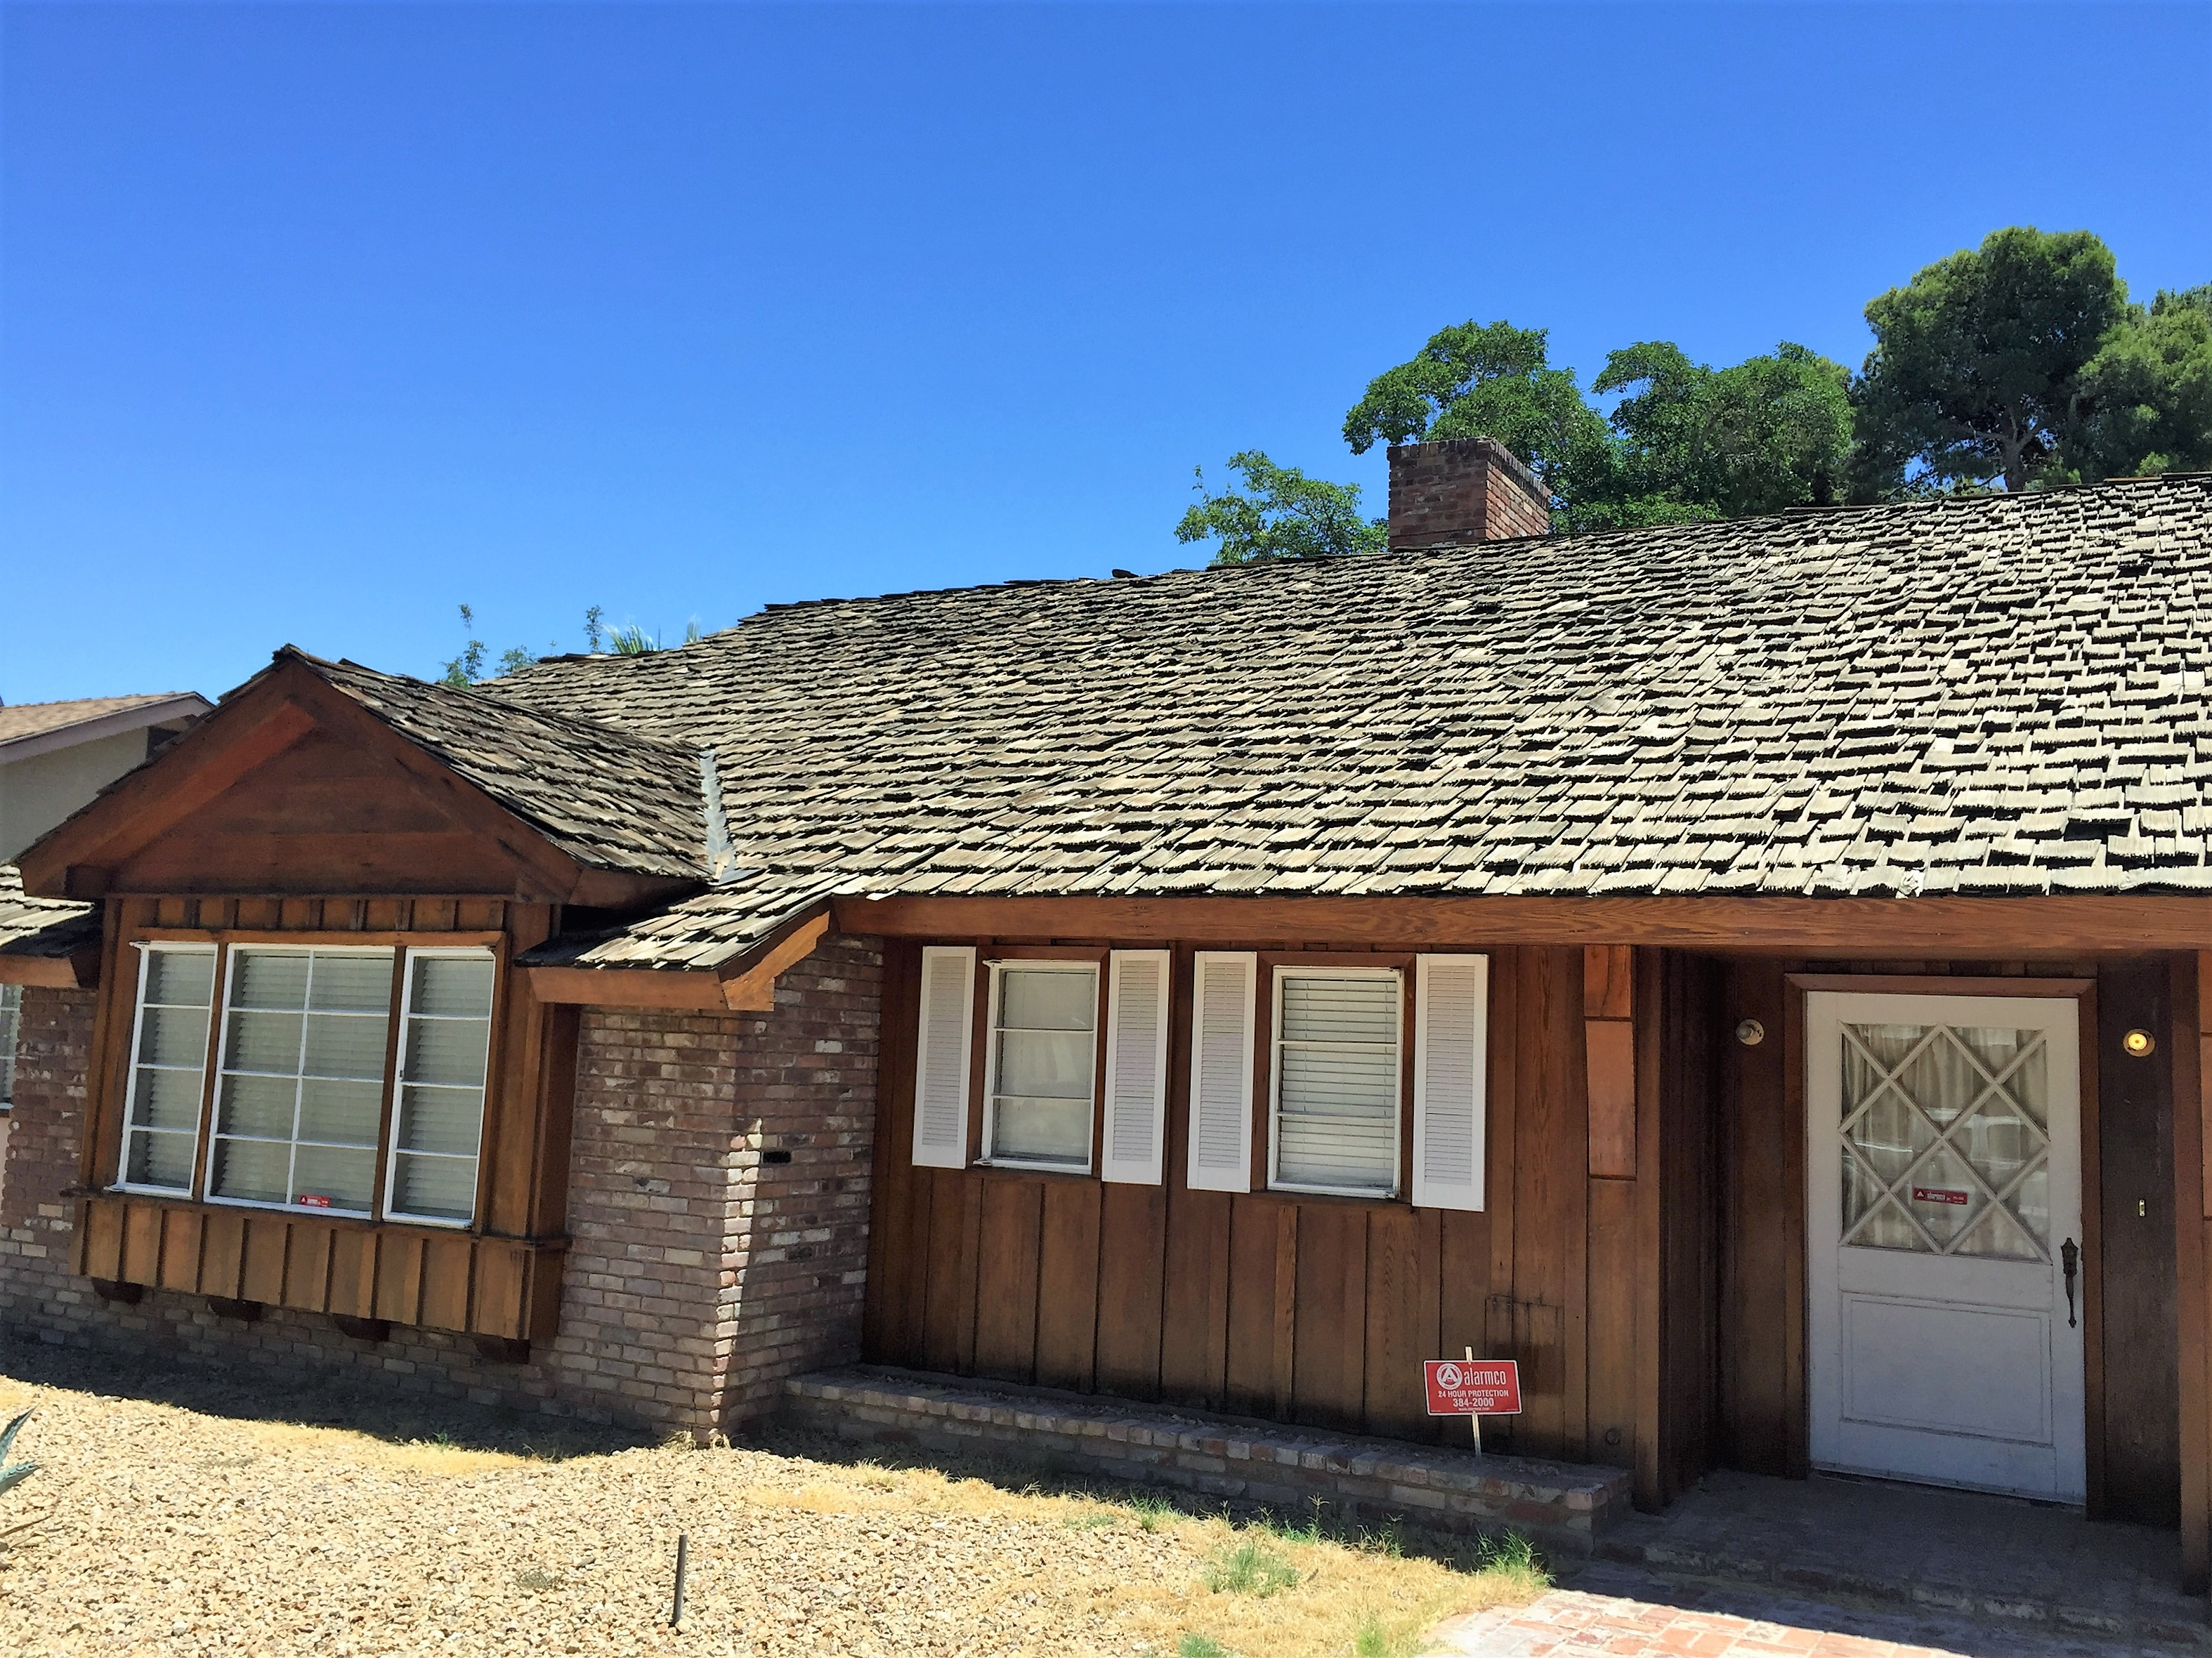 Vintage Las Vegas home with aging shake roofing